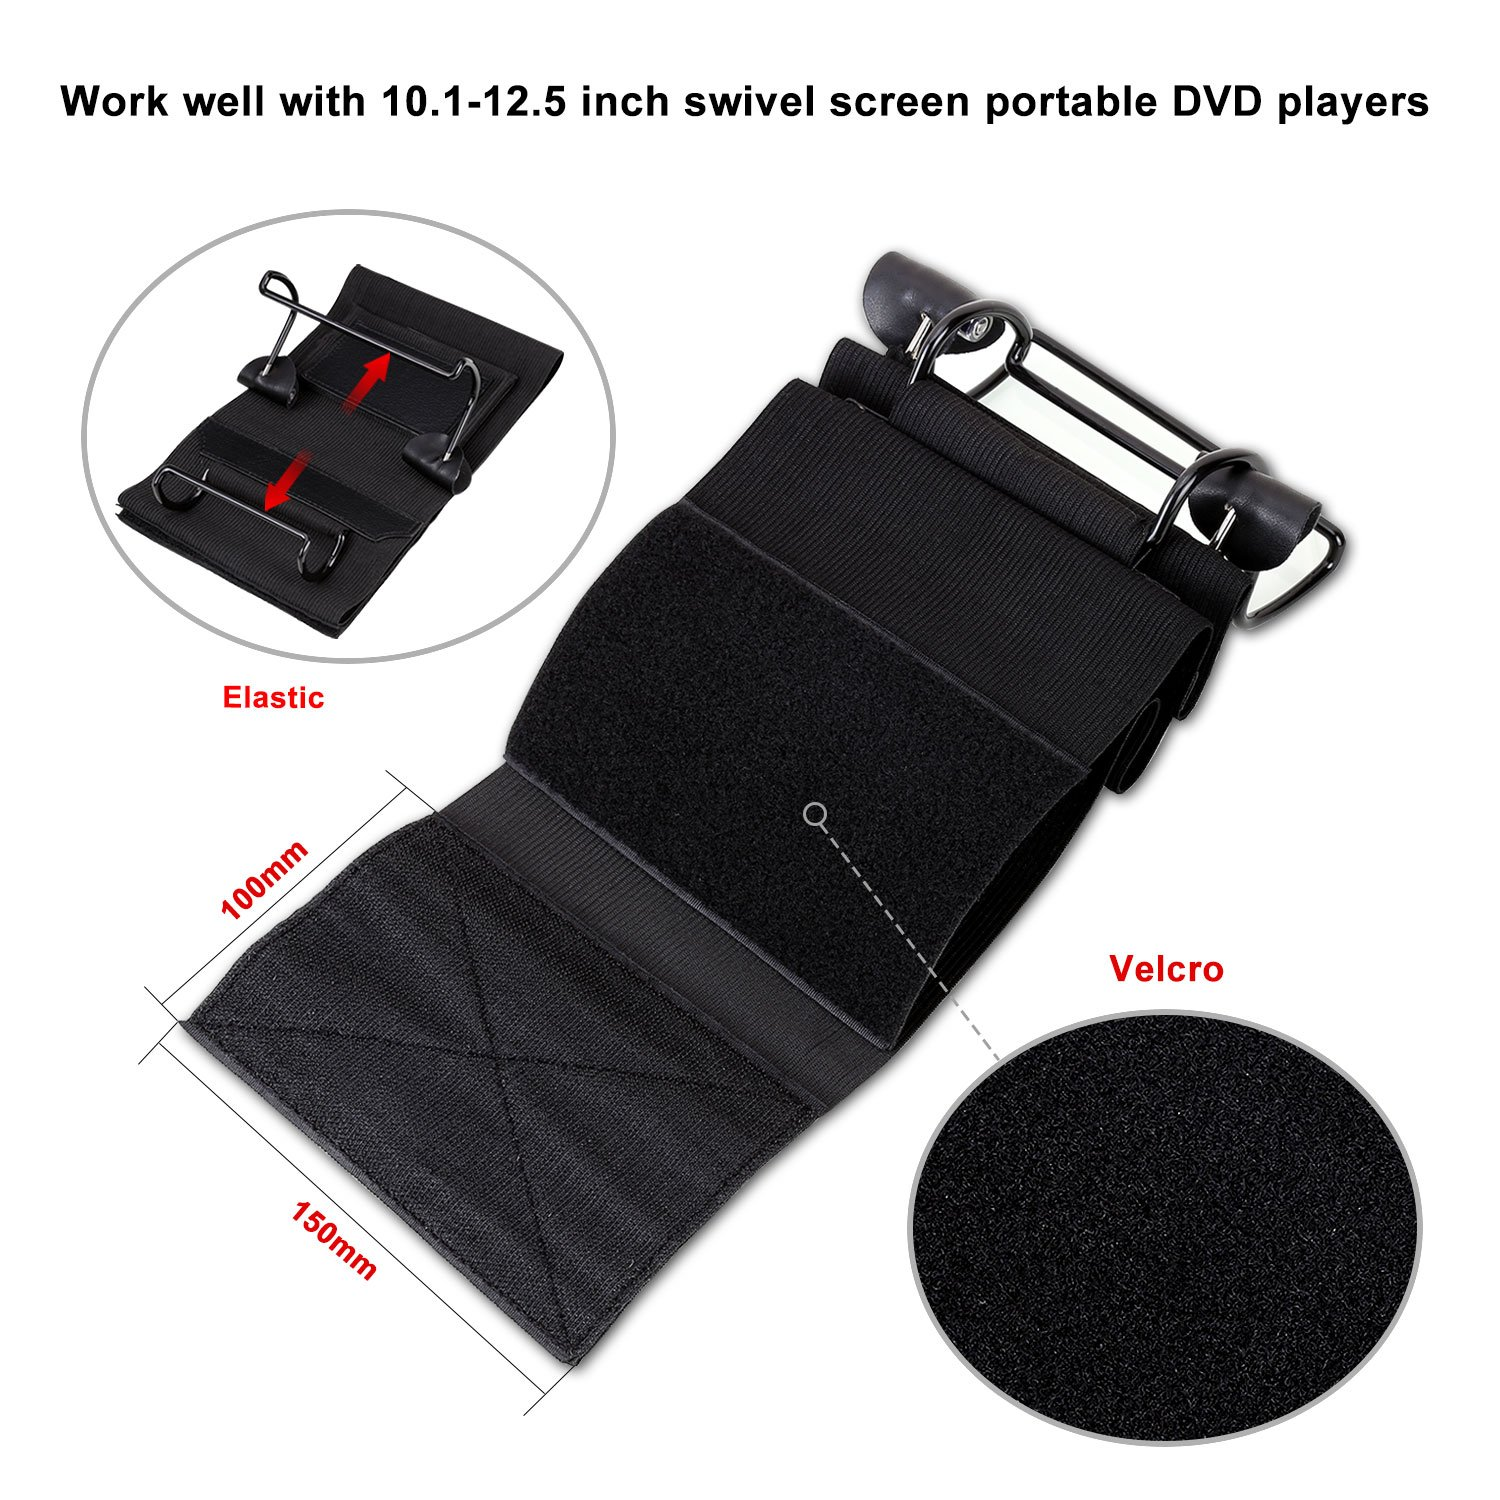 CUTRIP Car Headrest Mount Holder for CUTRIP 10.1 inch Portable Blu-ray Player and Fit for 10.1-12.5 inch Swivel Screen Portable DVD Players (DVD Player Thickness Requires about 35-42MM) by CUtrip (Image #3)